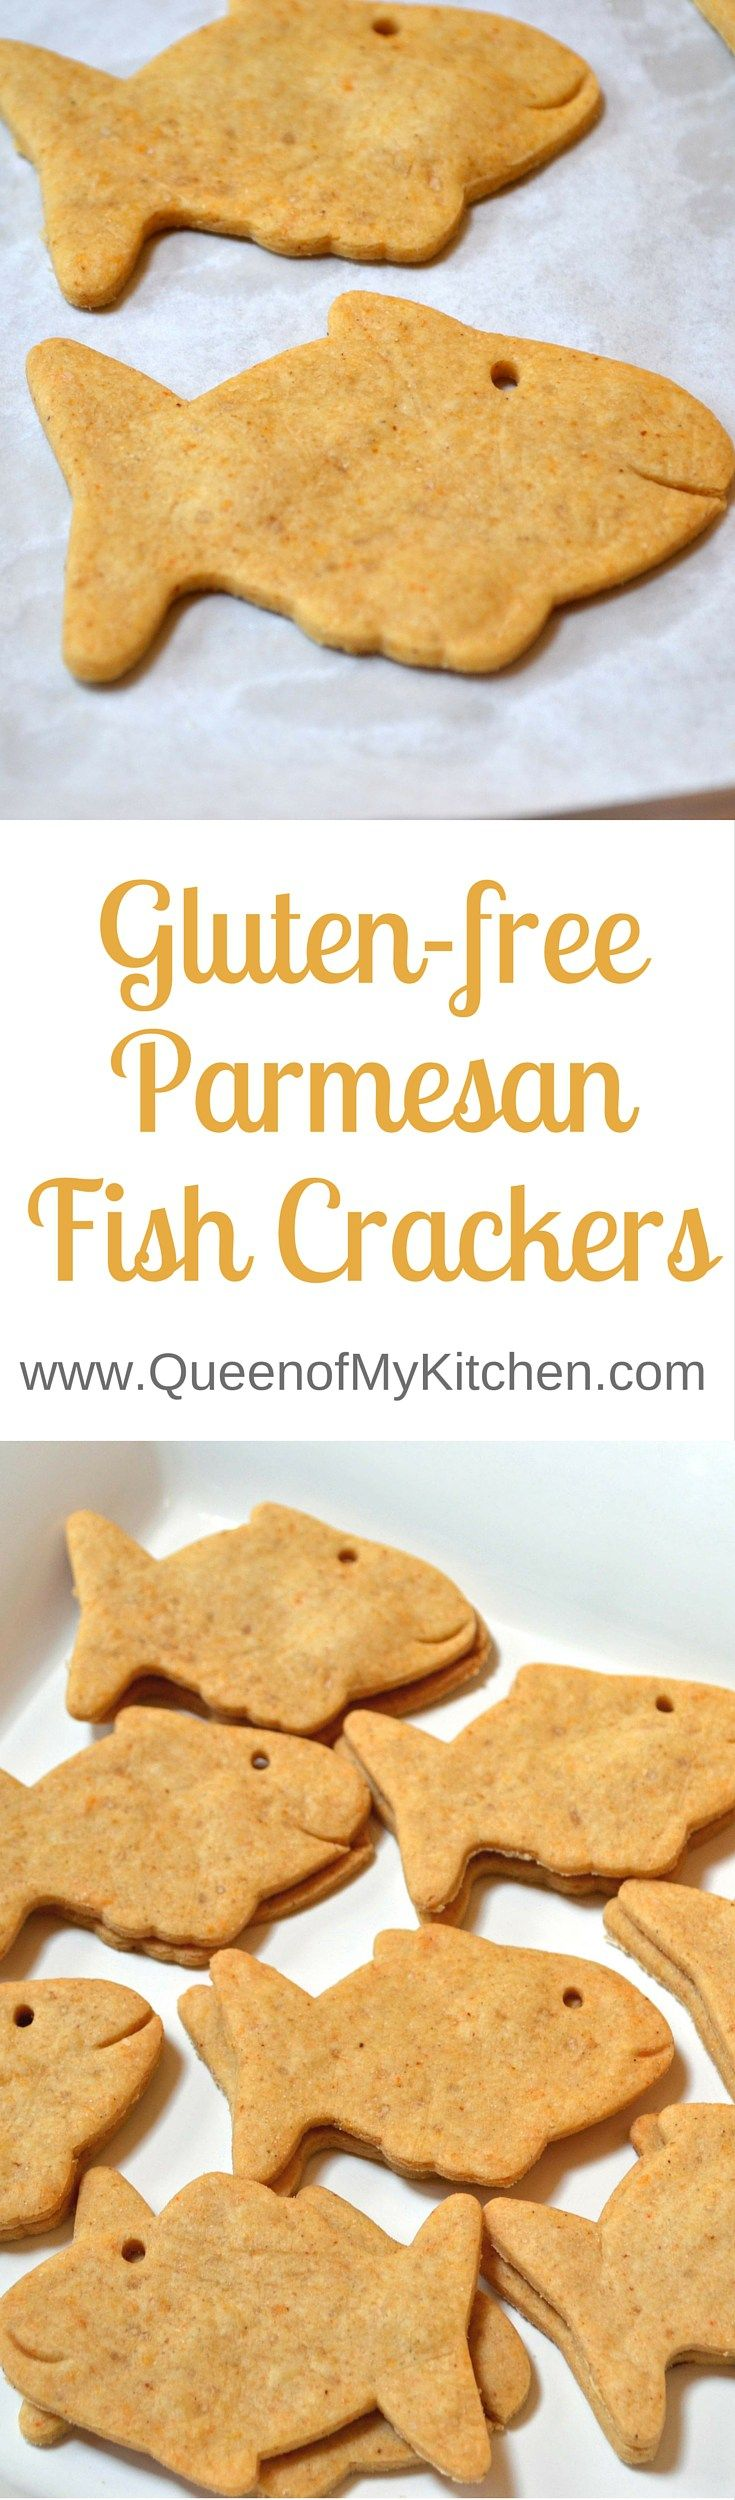 These Gluten Free Parmesan Fish crackers are a healthier version of the iconic Pepperidge Farm Goldfish crackers. | QueenofMyKitchen.com